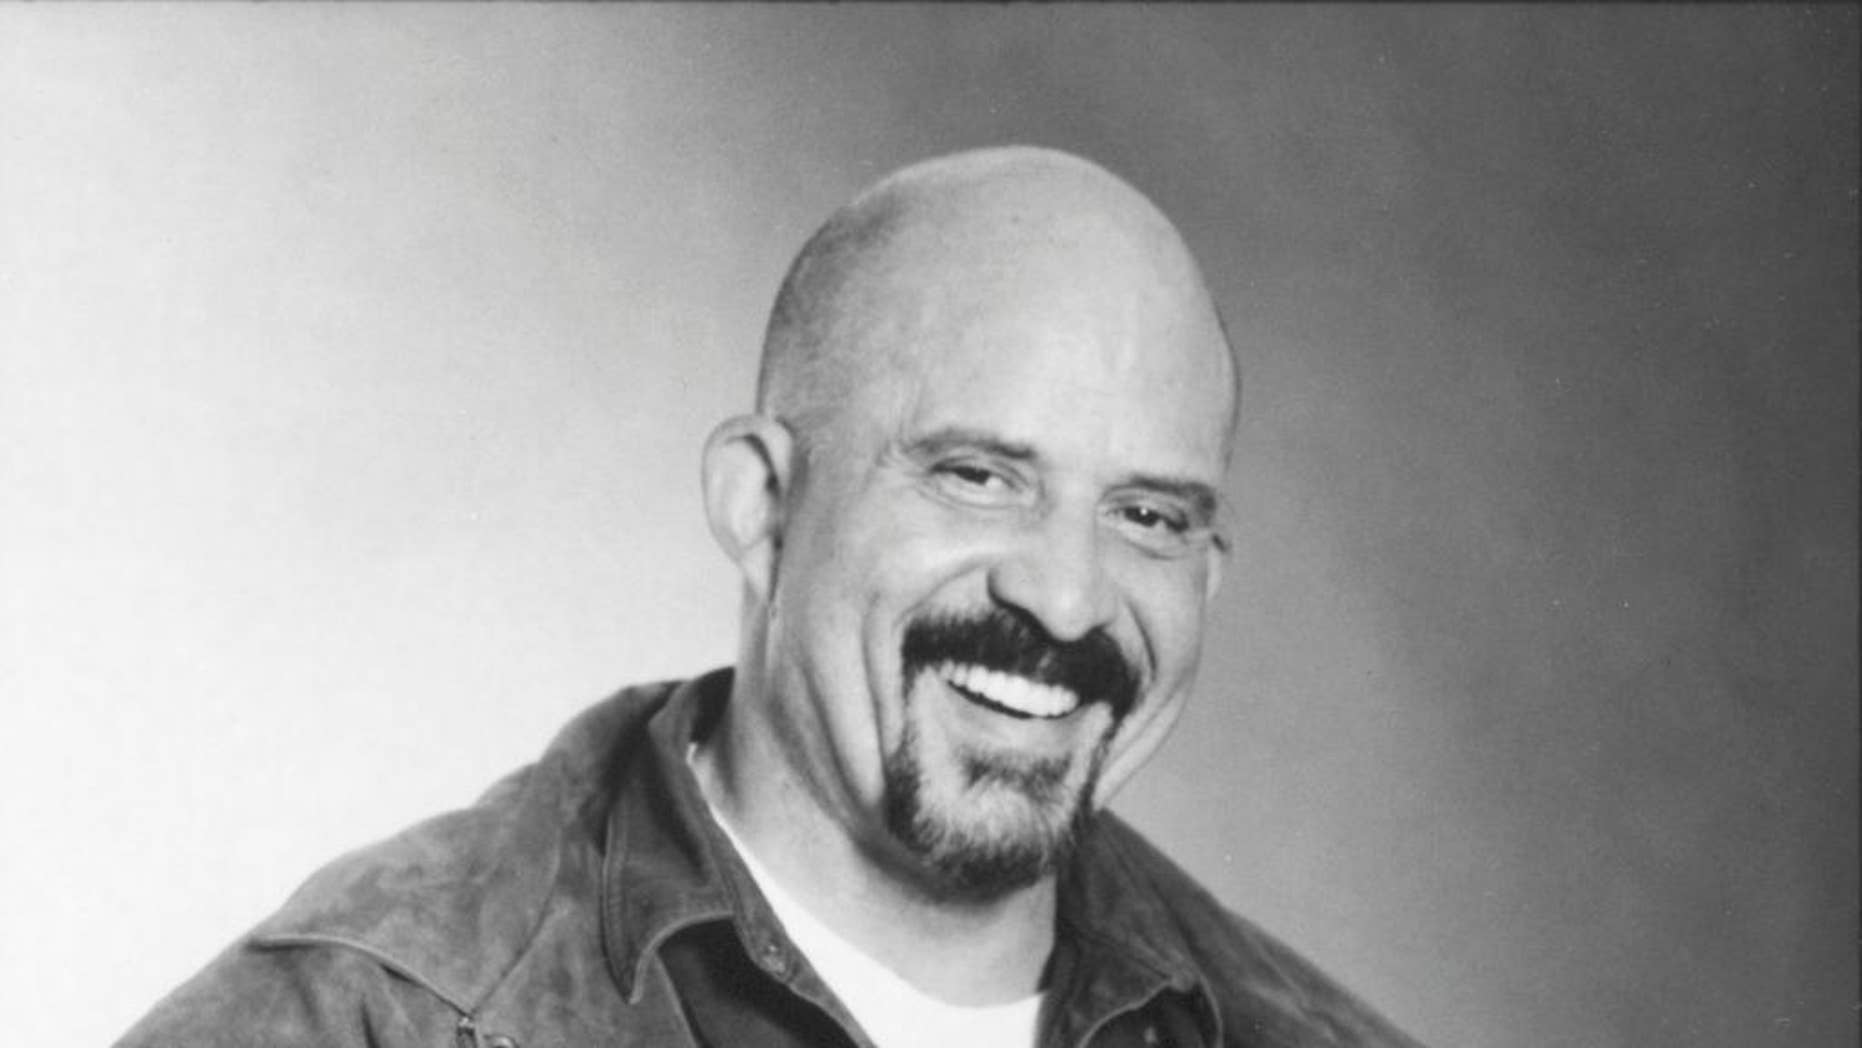 """This undated photo provided by TnT Talent Management shows Tom Towles. Towles, the mustached character actor who popped up in several Rob Zombie's movies, has died at age 71. Towles' spokeswoman Tammy Dupal says the actor who appeared in """"House of 1000 Corpses"""" and """"The Devil's Rejects"""" died April 2, 2015, in Pinellas, Fla., from complications following a stroke. (AP Photo/TnT Talent Management)"""